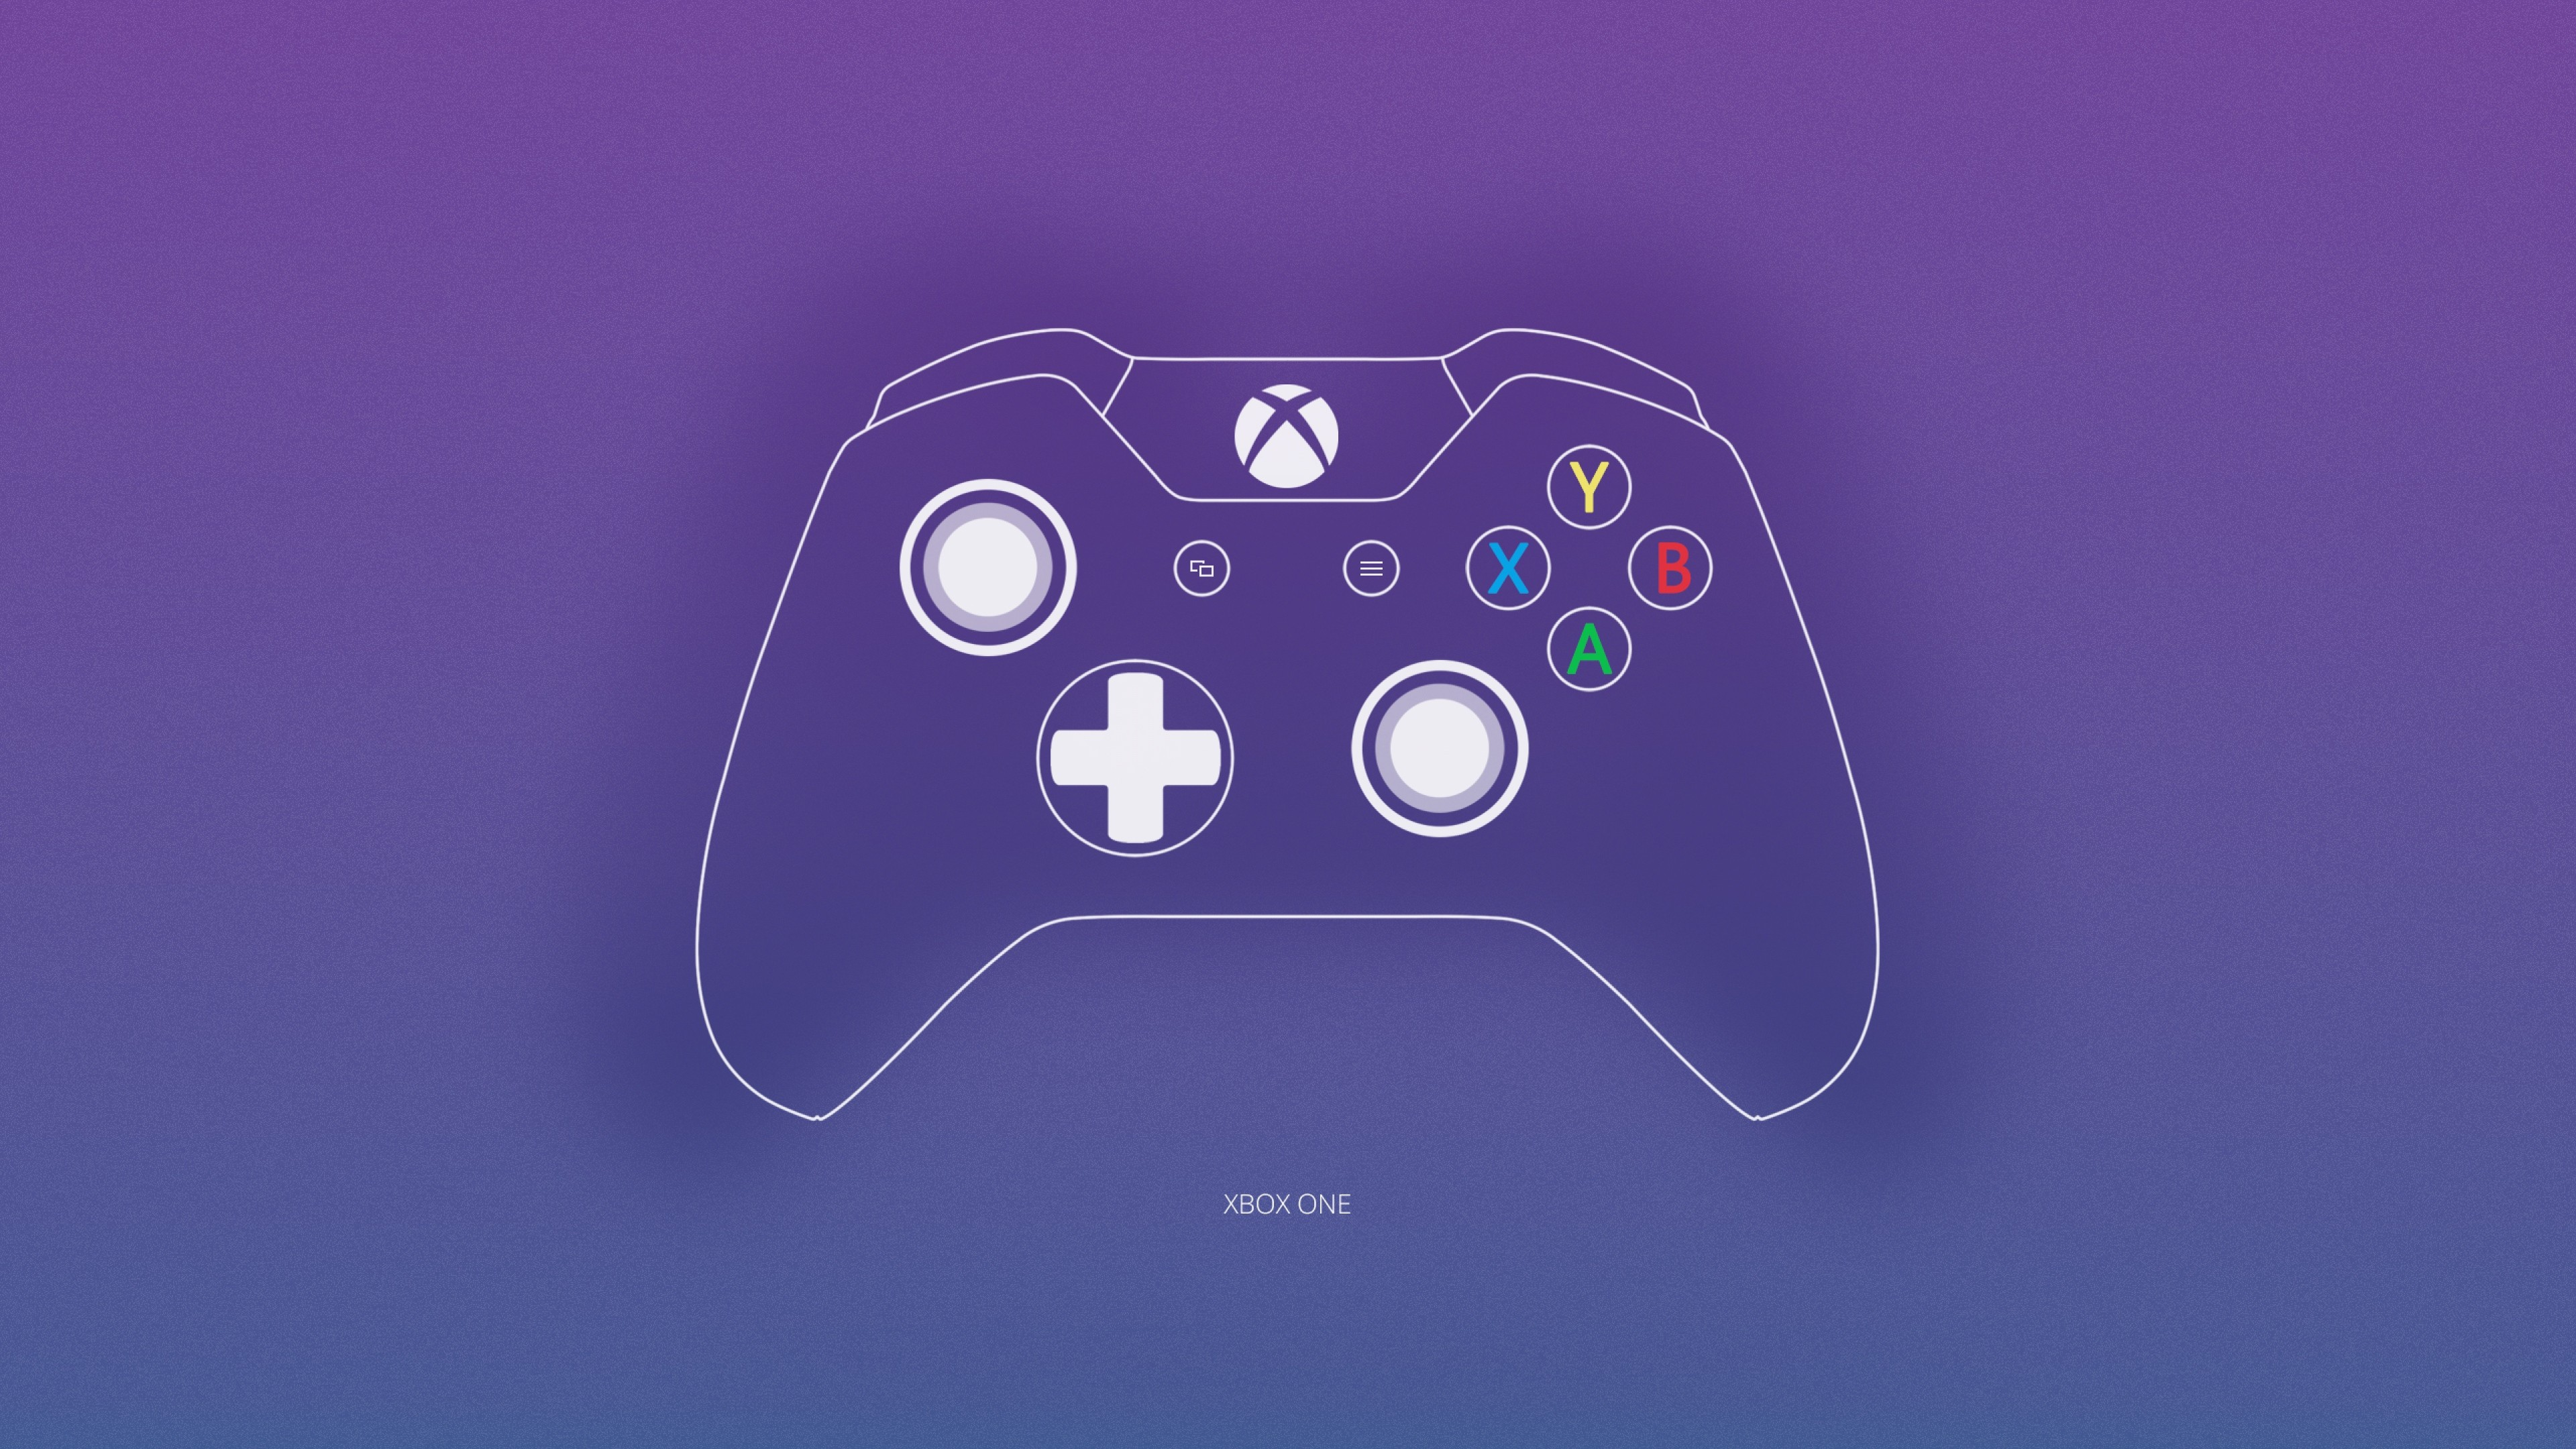 Foyer Wallpaper Xbox One : Xbox one wallpaper ·① download free beautiful backgrounds